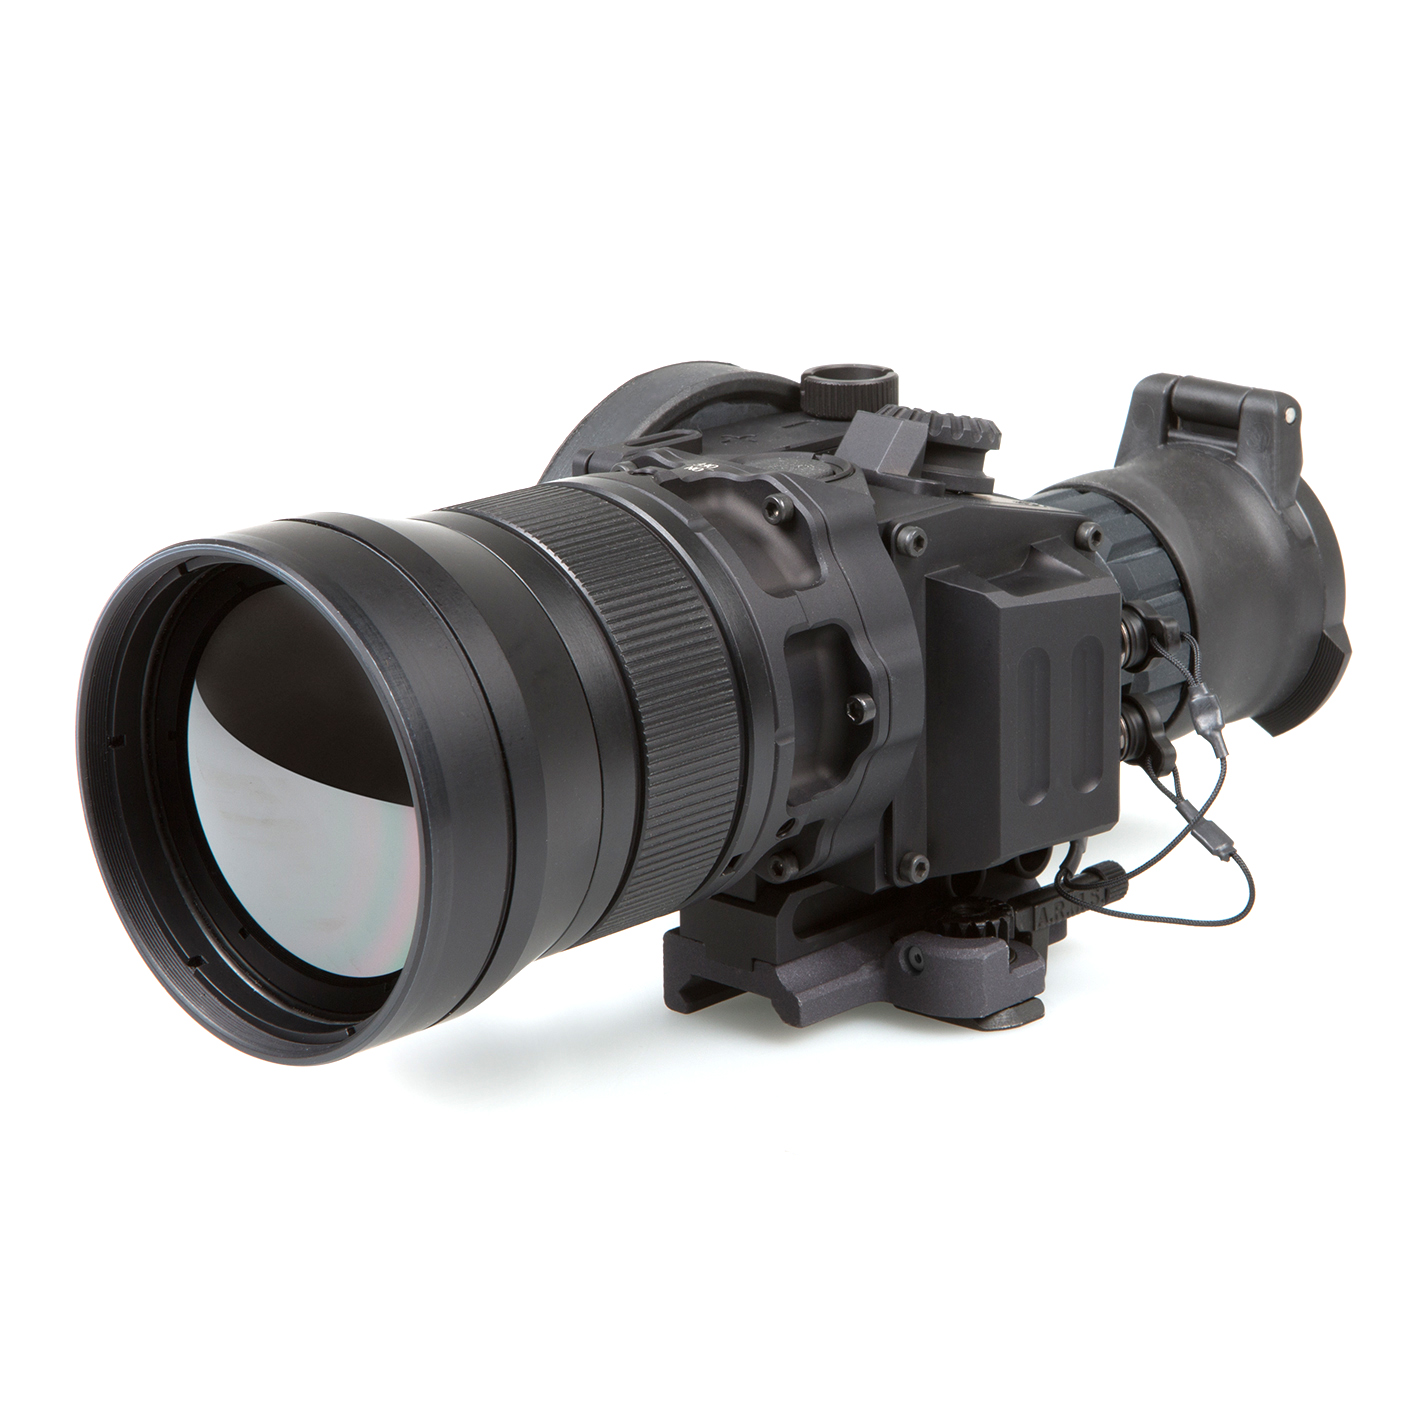 Brolis LW75 LWIR Thermal Weapon Sight